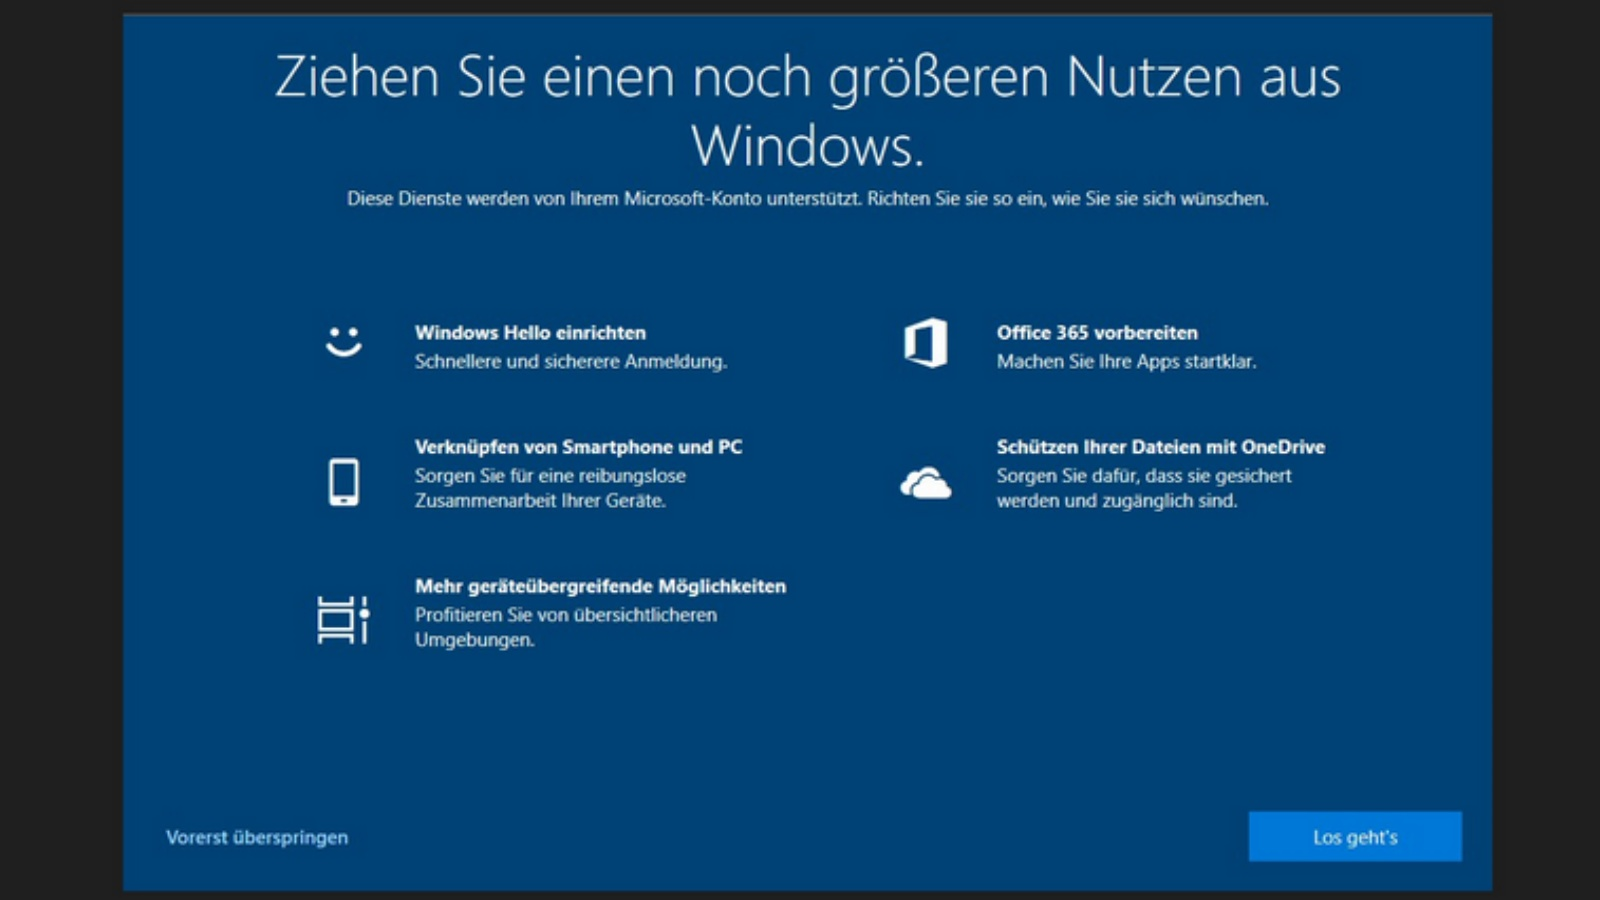 Windows 10 annoys users with fullscreen message